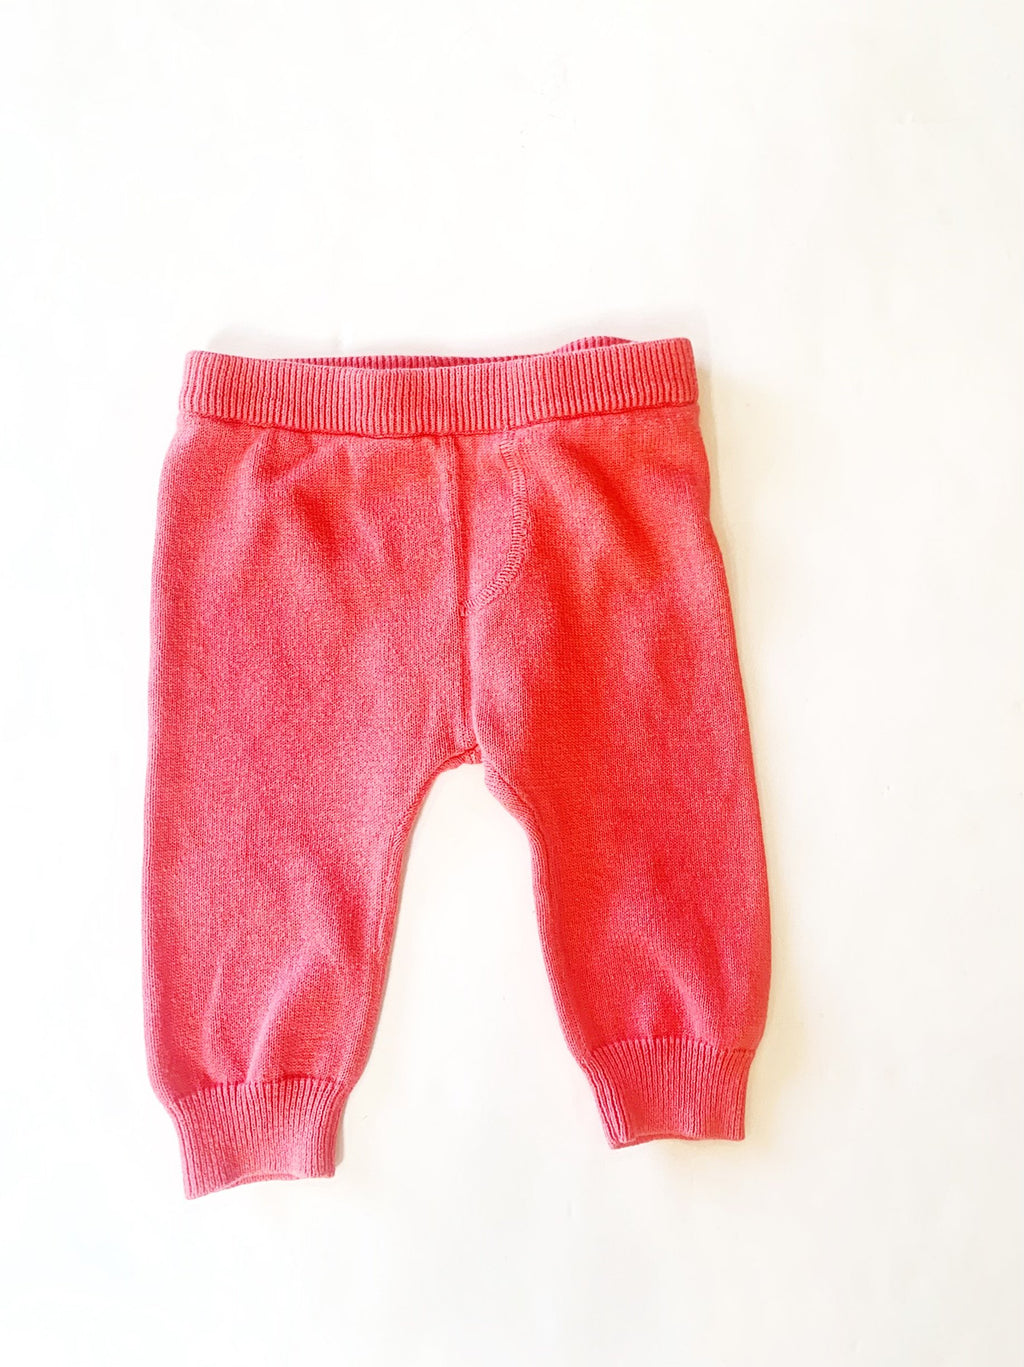 H&M leggings size 6-9m-Fresh Kids Inc.